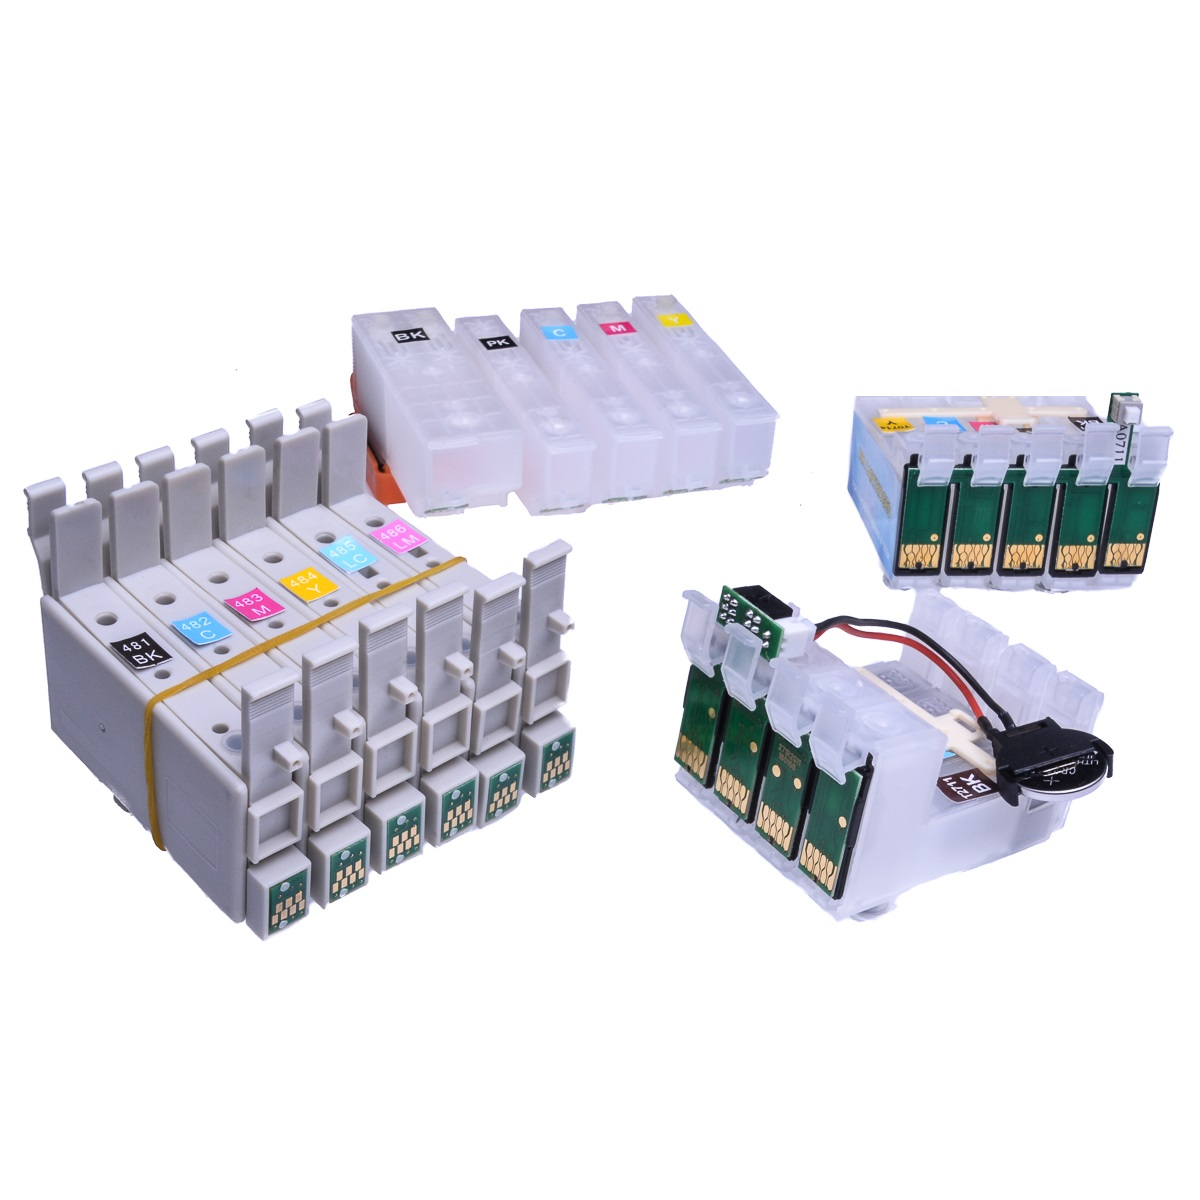 Auto Reset Ink Cartridge fits Epson SX235W Continuous Ink Systems